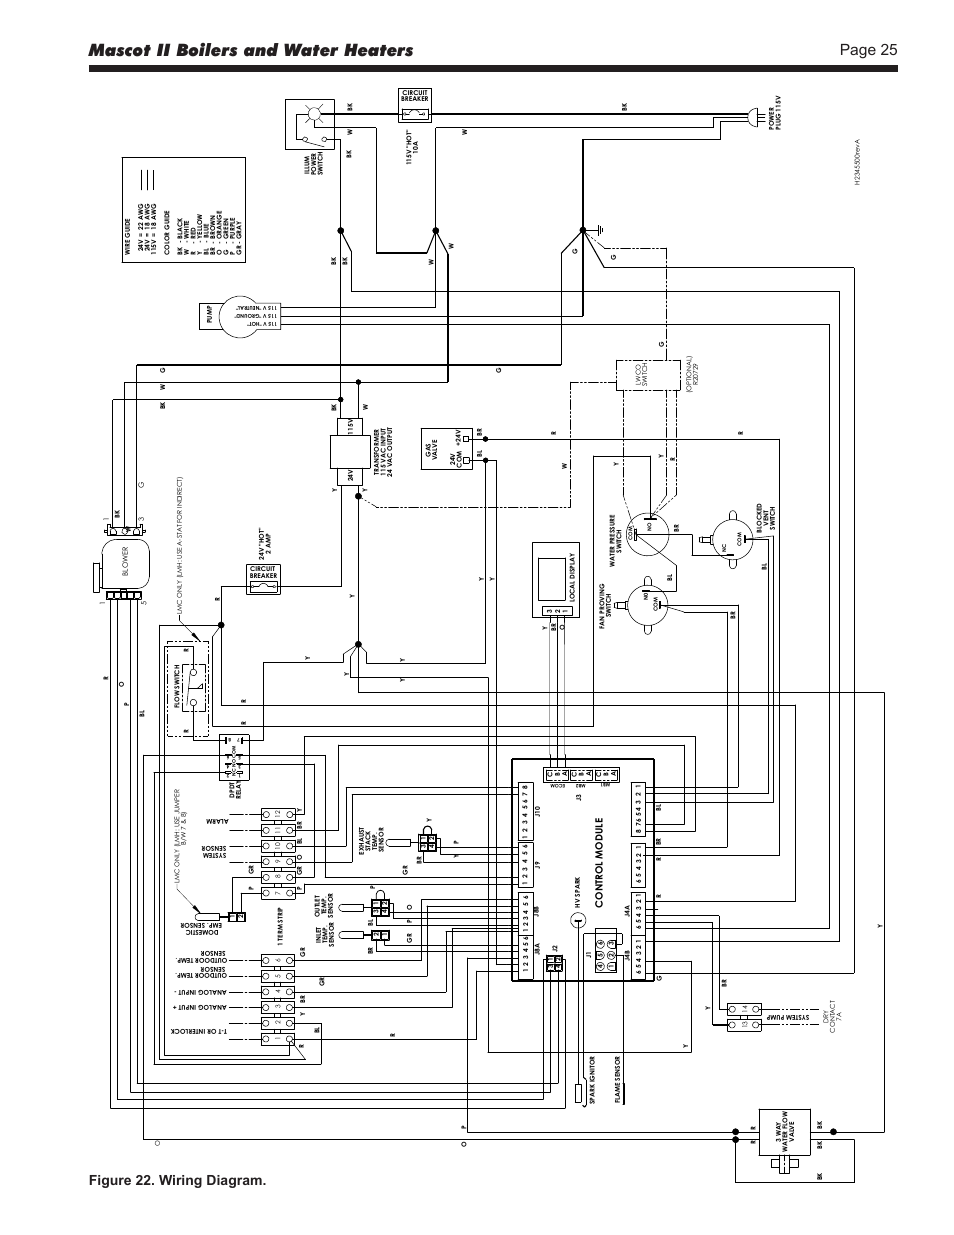 Mascot Ii Boilers And Water Heaters Page 25 Figure 22 Wiring Diagrams For Diagram